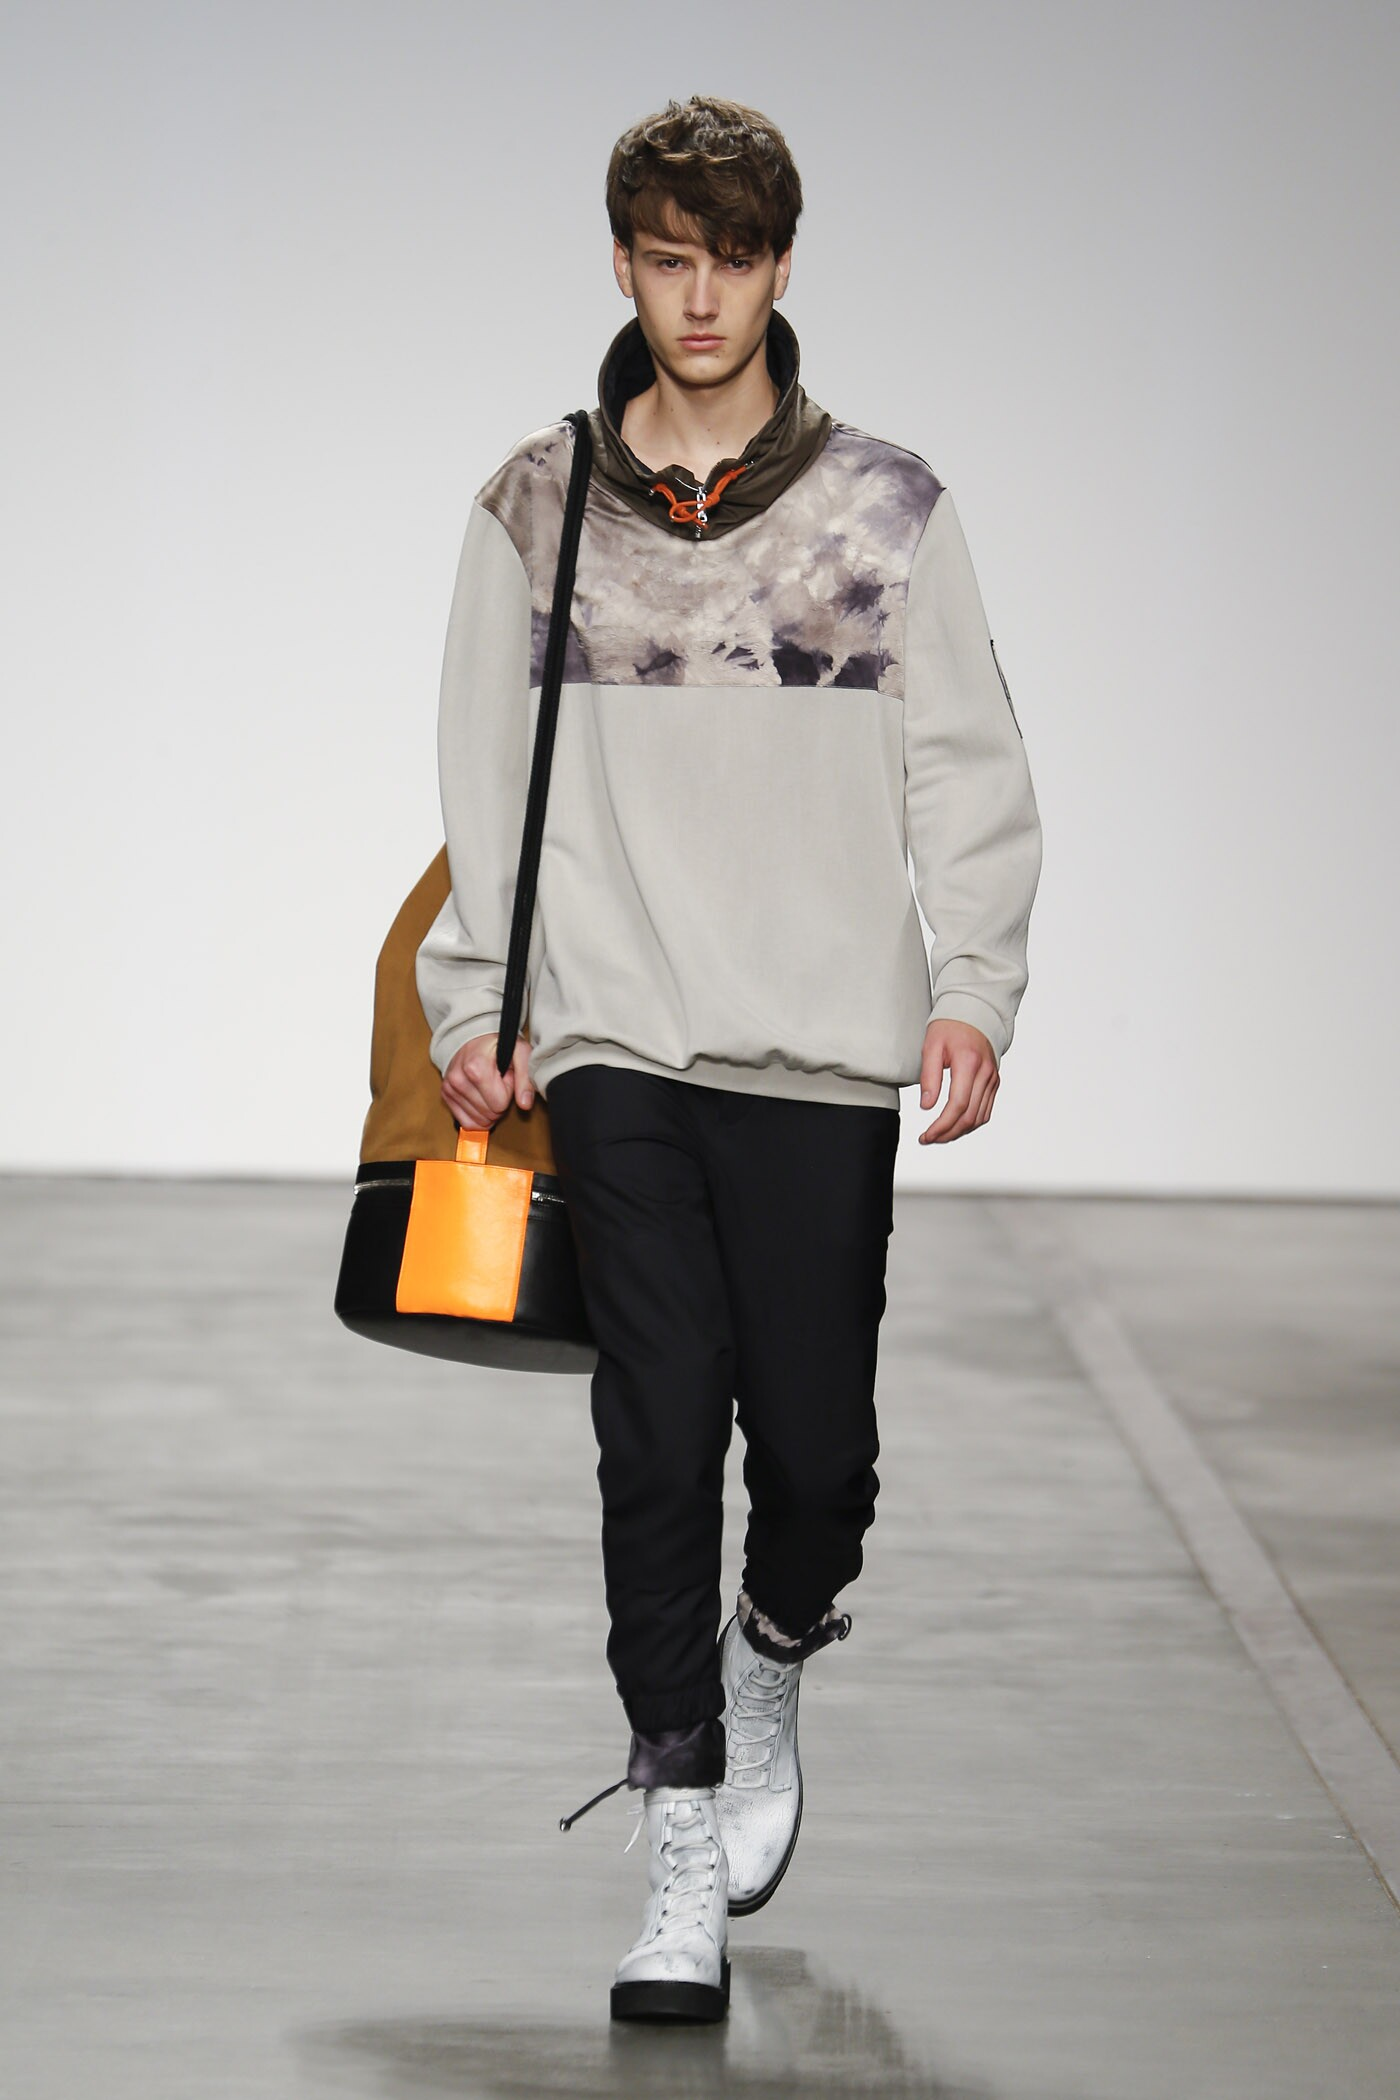 ICEBERG SPRING SUMMER 2015 MEN'S COLLECTION